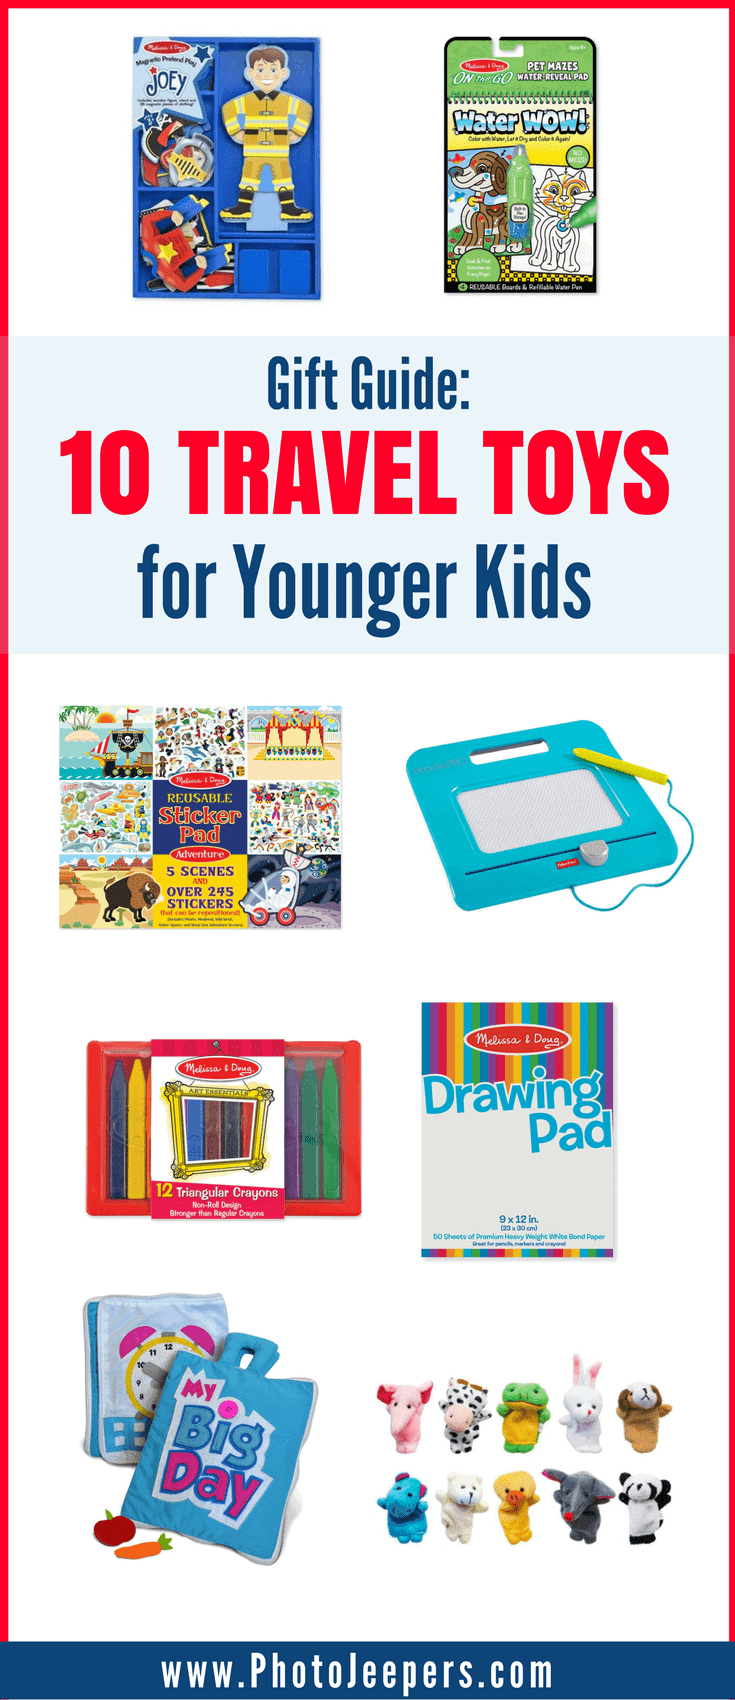 Are you looking for the perfect gifts for kids who travel? We will share our favorite travel toys for younger kids to help keep them distracted and happy on long trips. If you're planning a road trip for the holidays, you'll want to grab these fun travel toys and travel activities for a road trip with kids before you leave. Make sure you save this to your travel or Christmas board so you can grab these gifts for your kids!